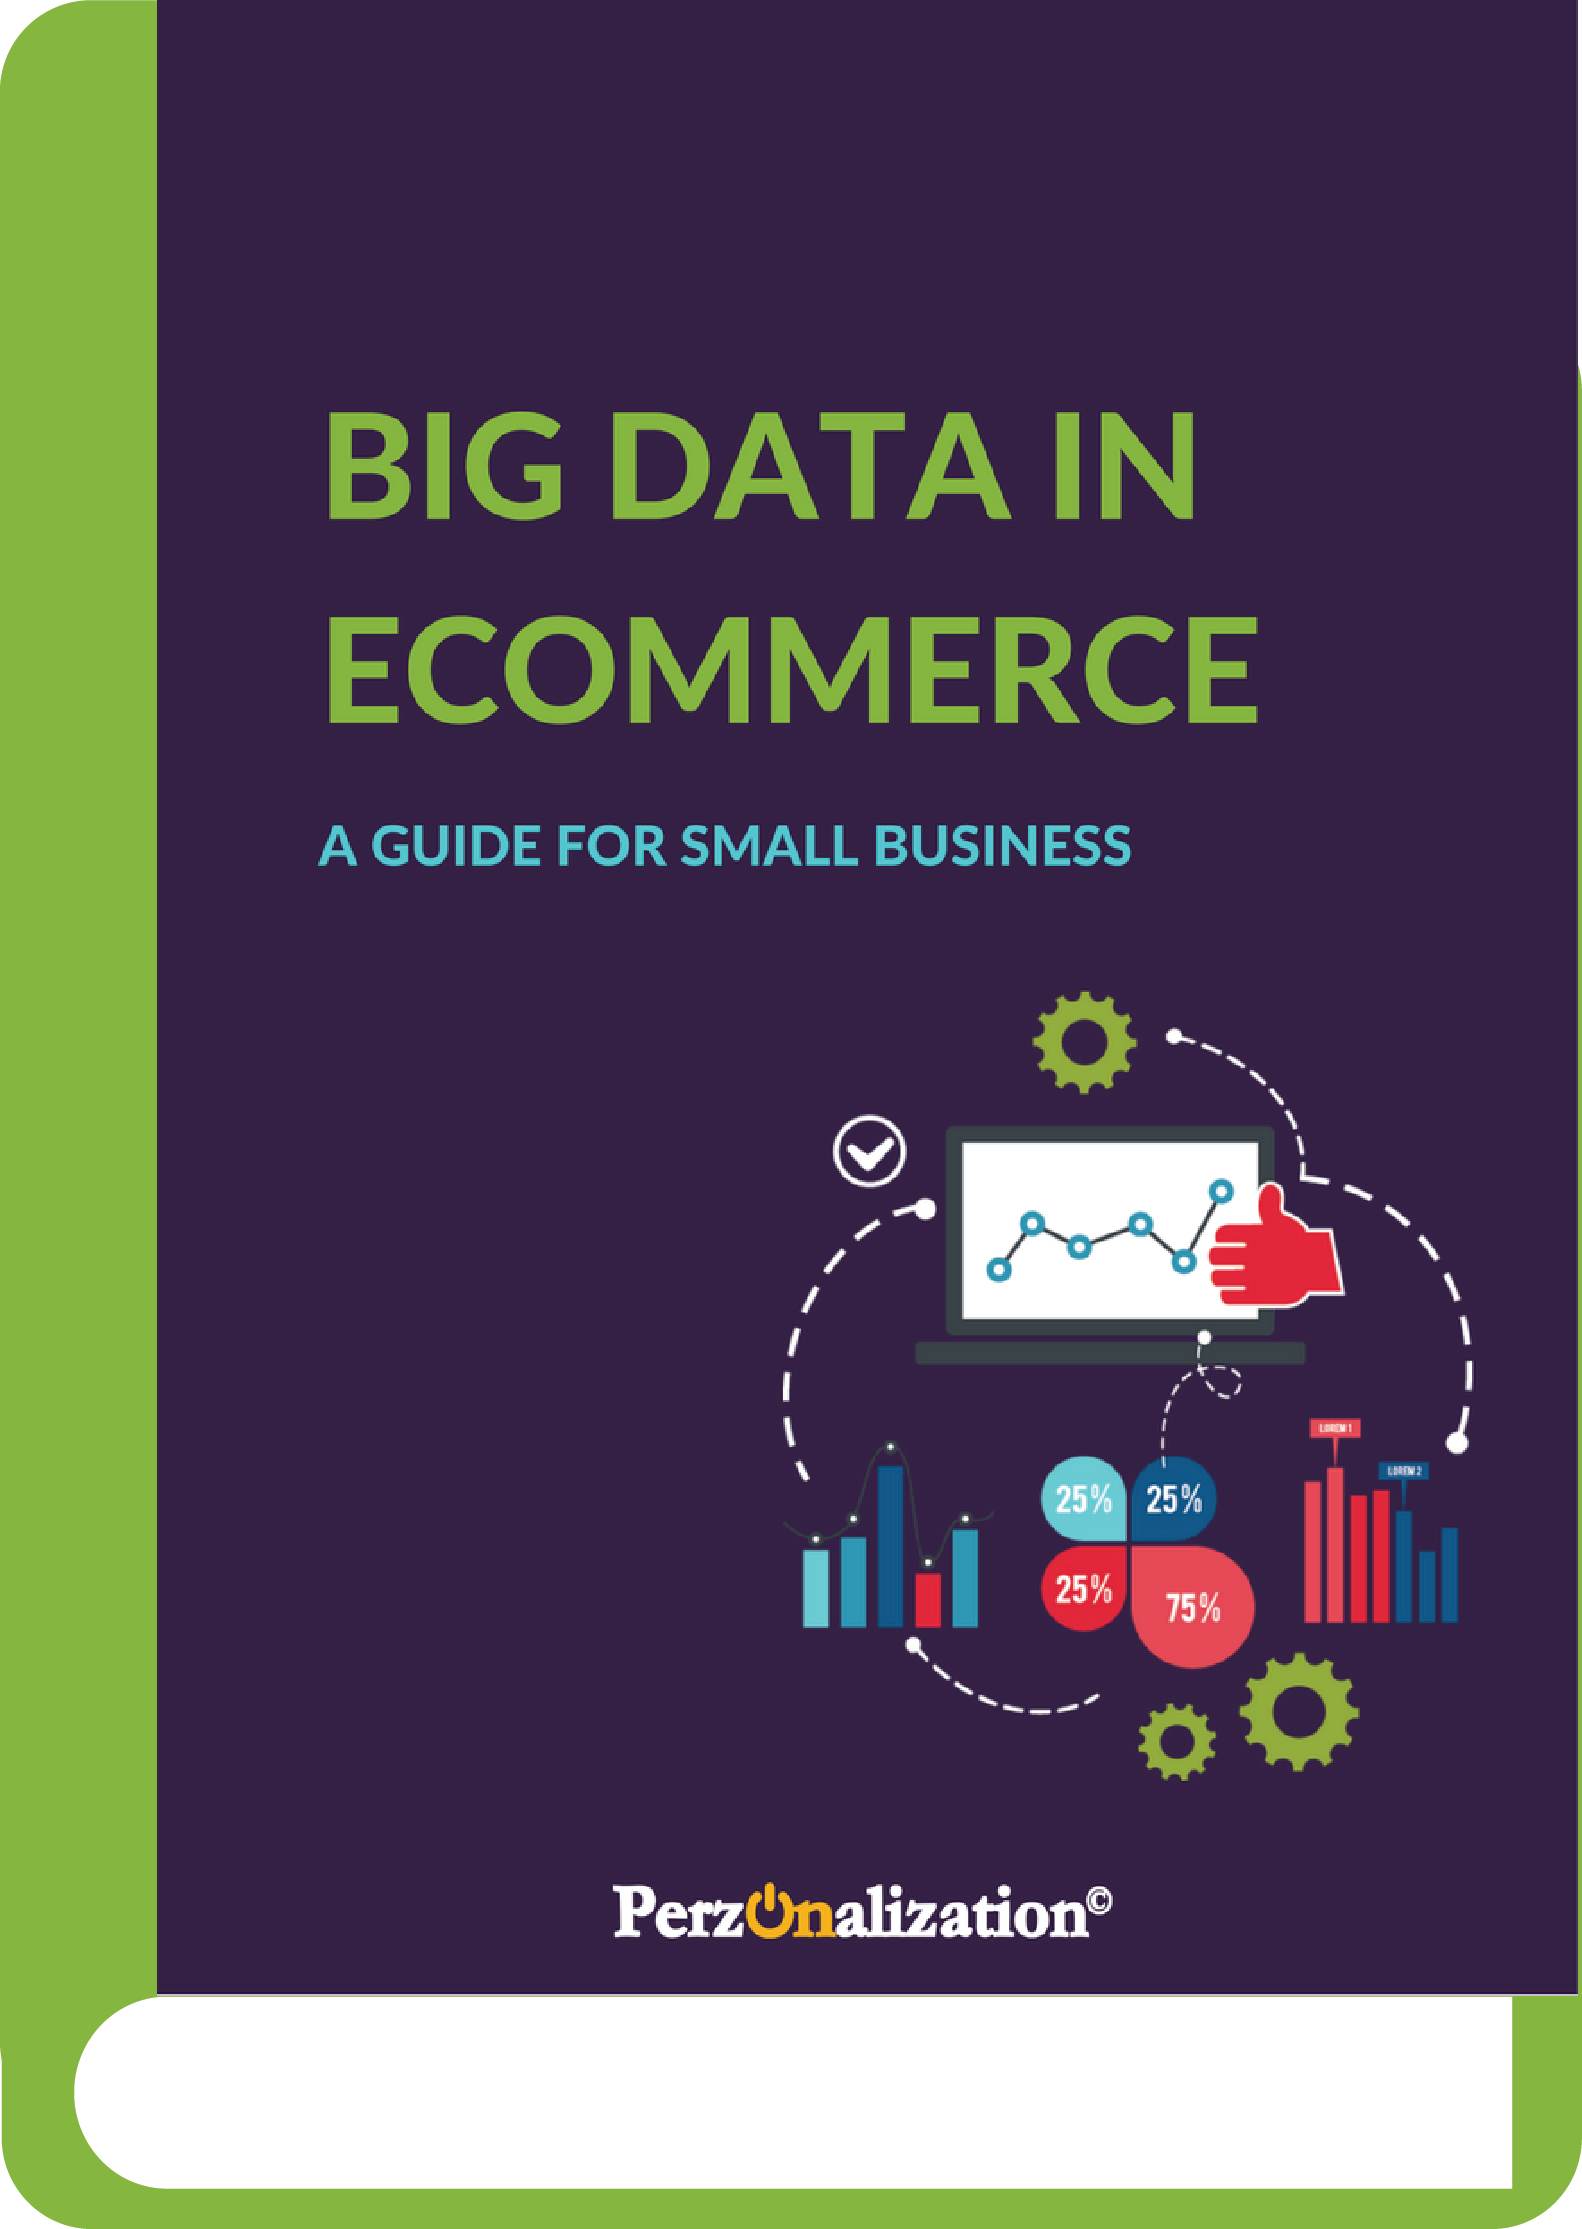 Big data has been a buzzword in today's business world for the last couple of years and especially in the context of e-commerce.